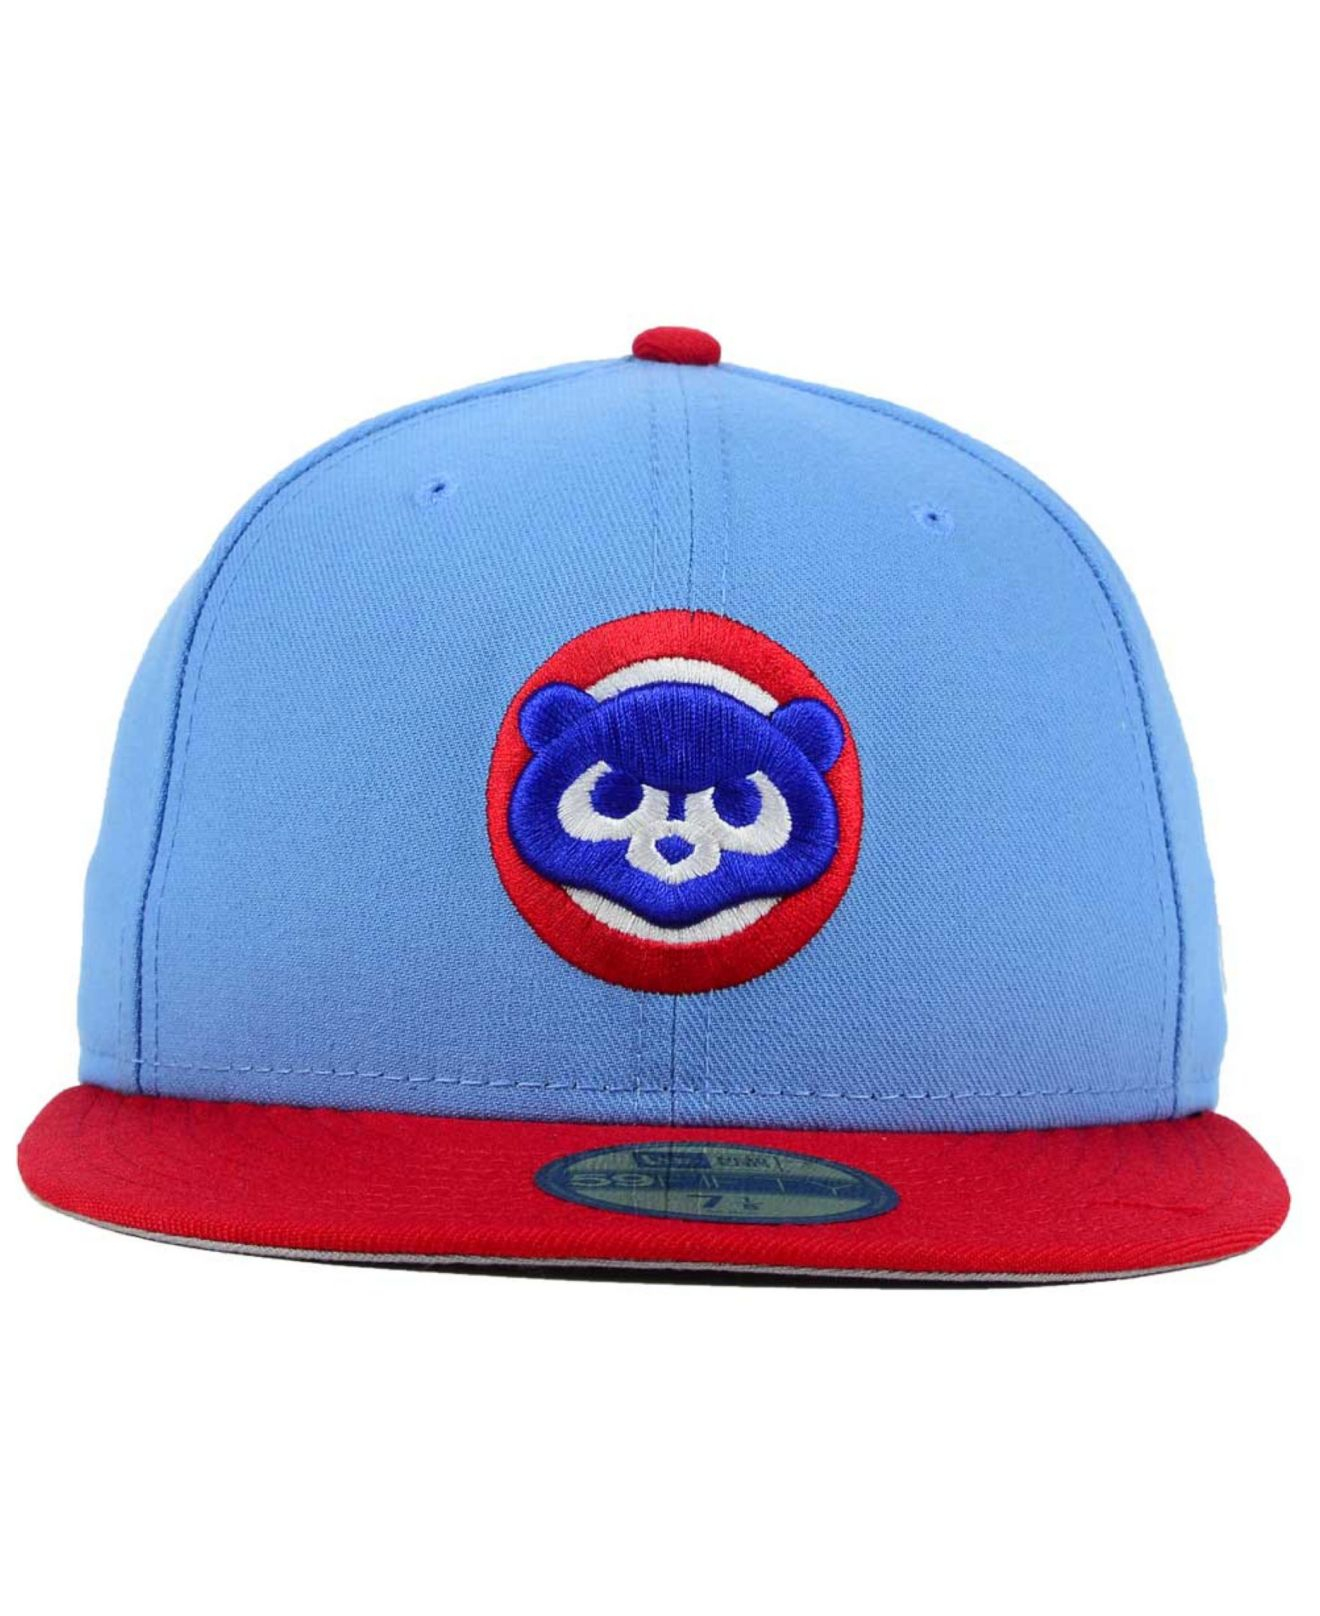 23161b88110 Lyst - KTZ Chicago Cubs Cooperstown 2 Tone 59Fifty Cap in Blue for Men